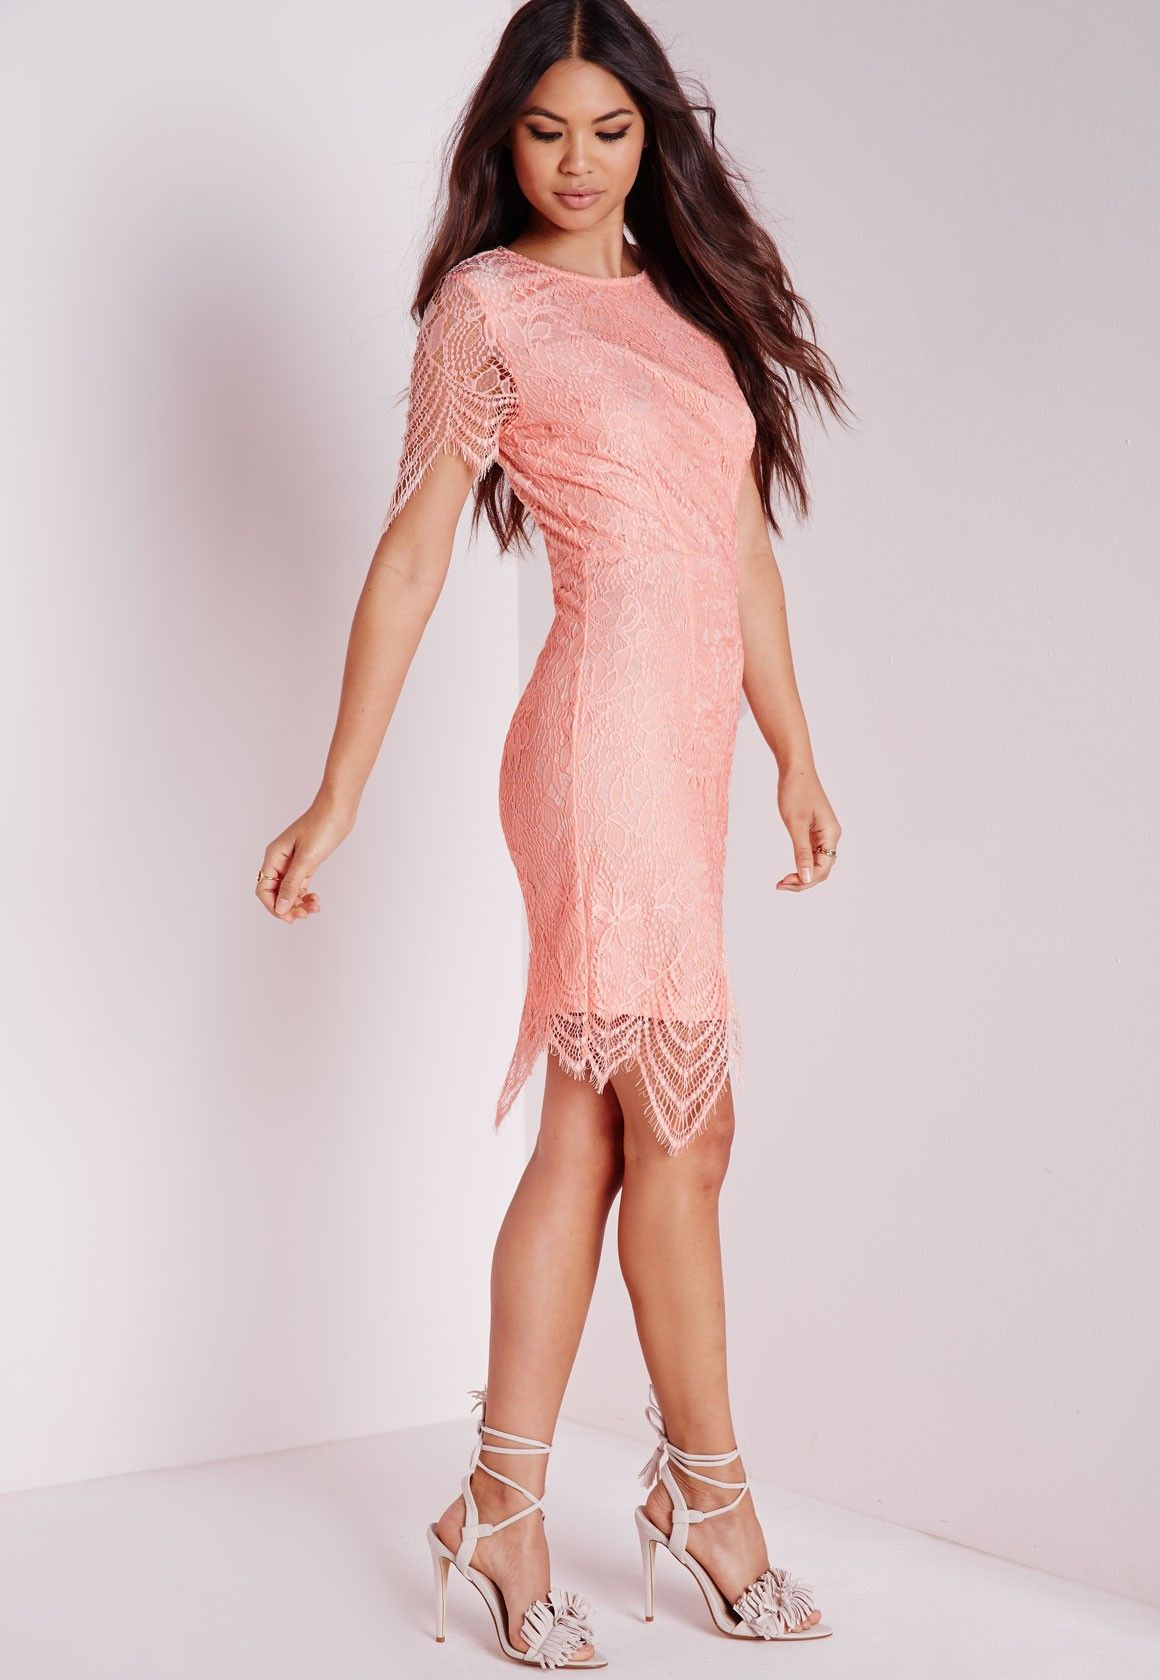 Lace dress bodycon  Missguided  Lace Short Sleeve Bodycon Dress Pink  Wedding day